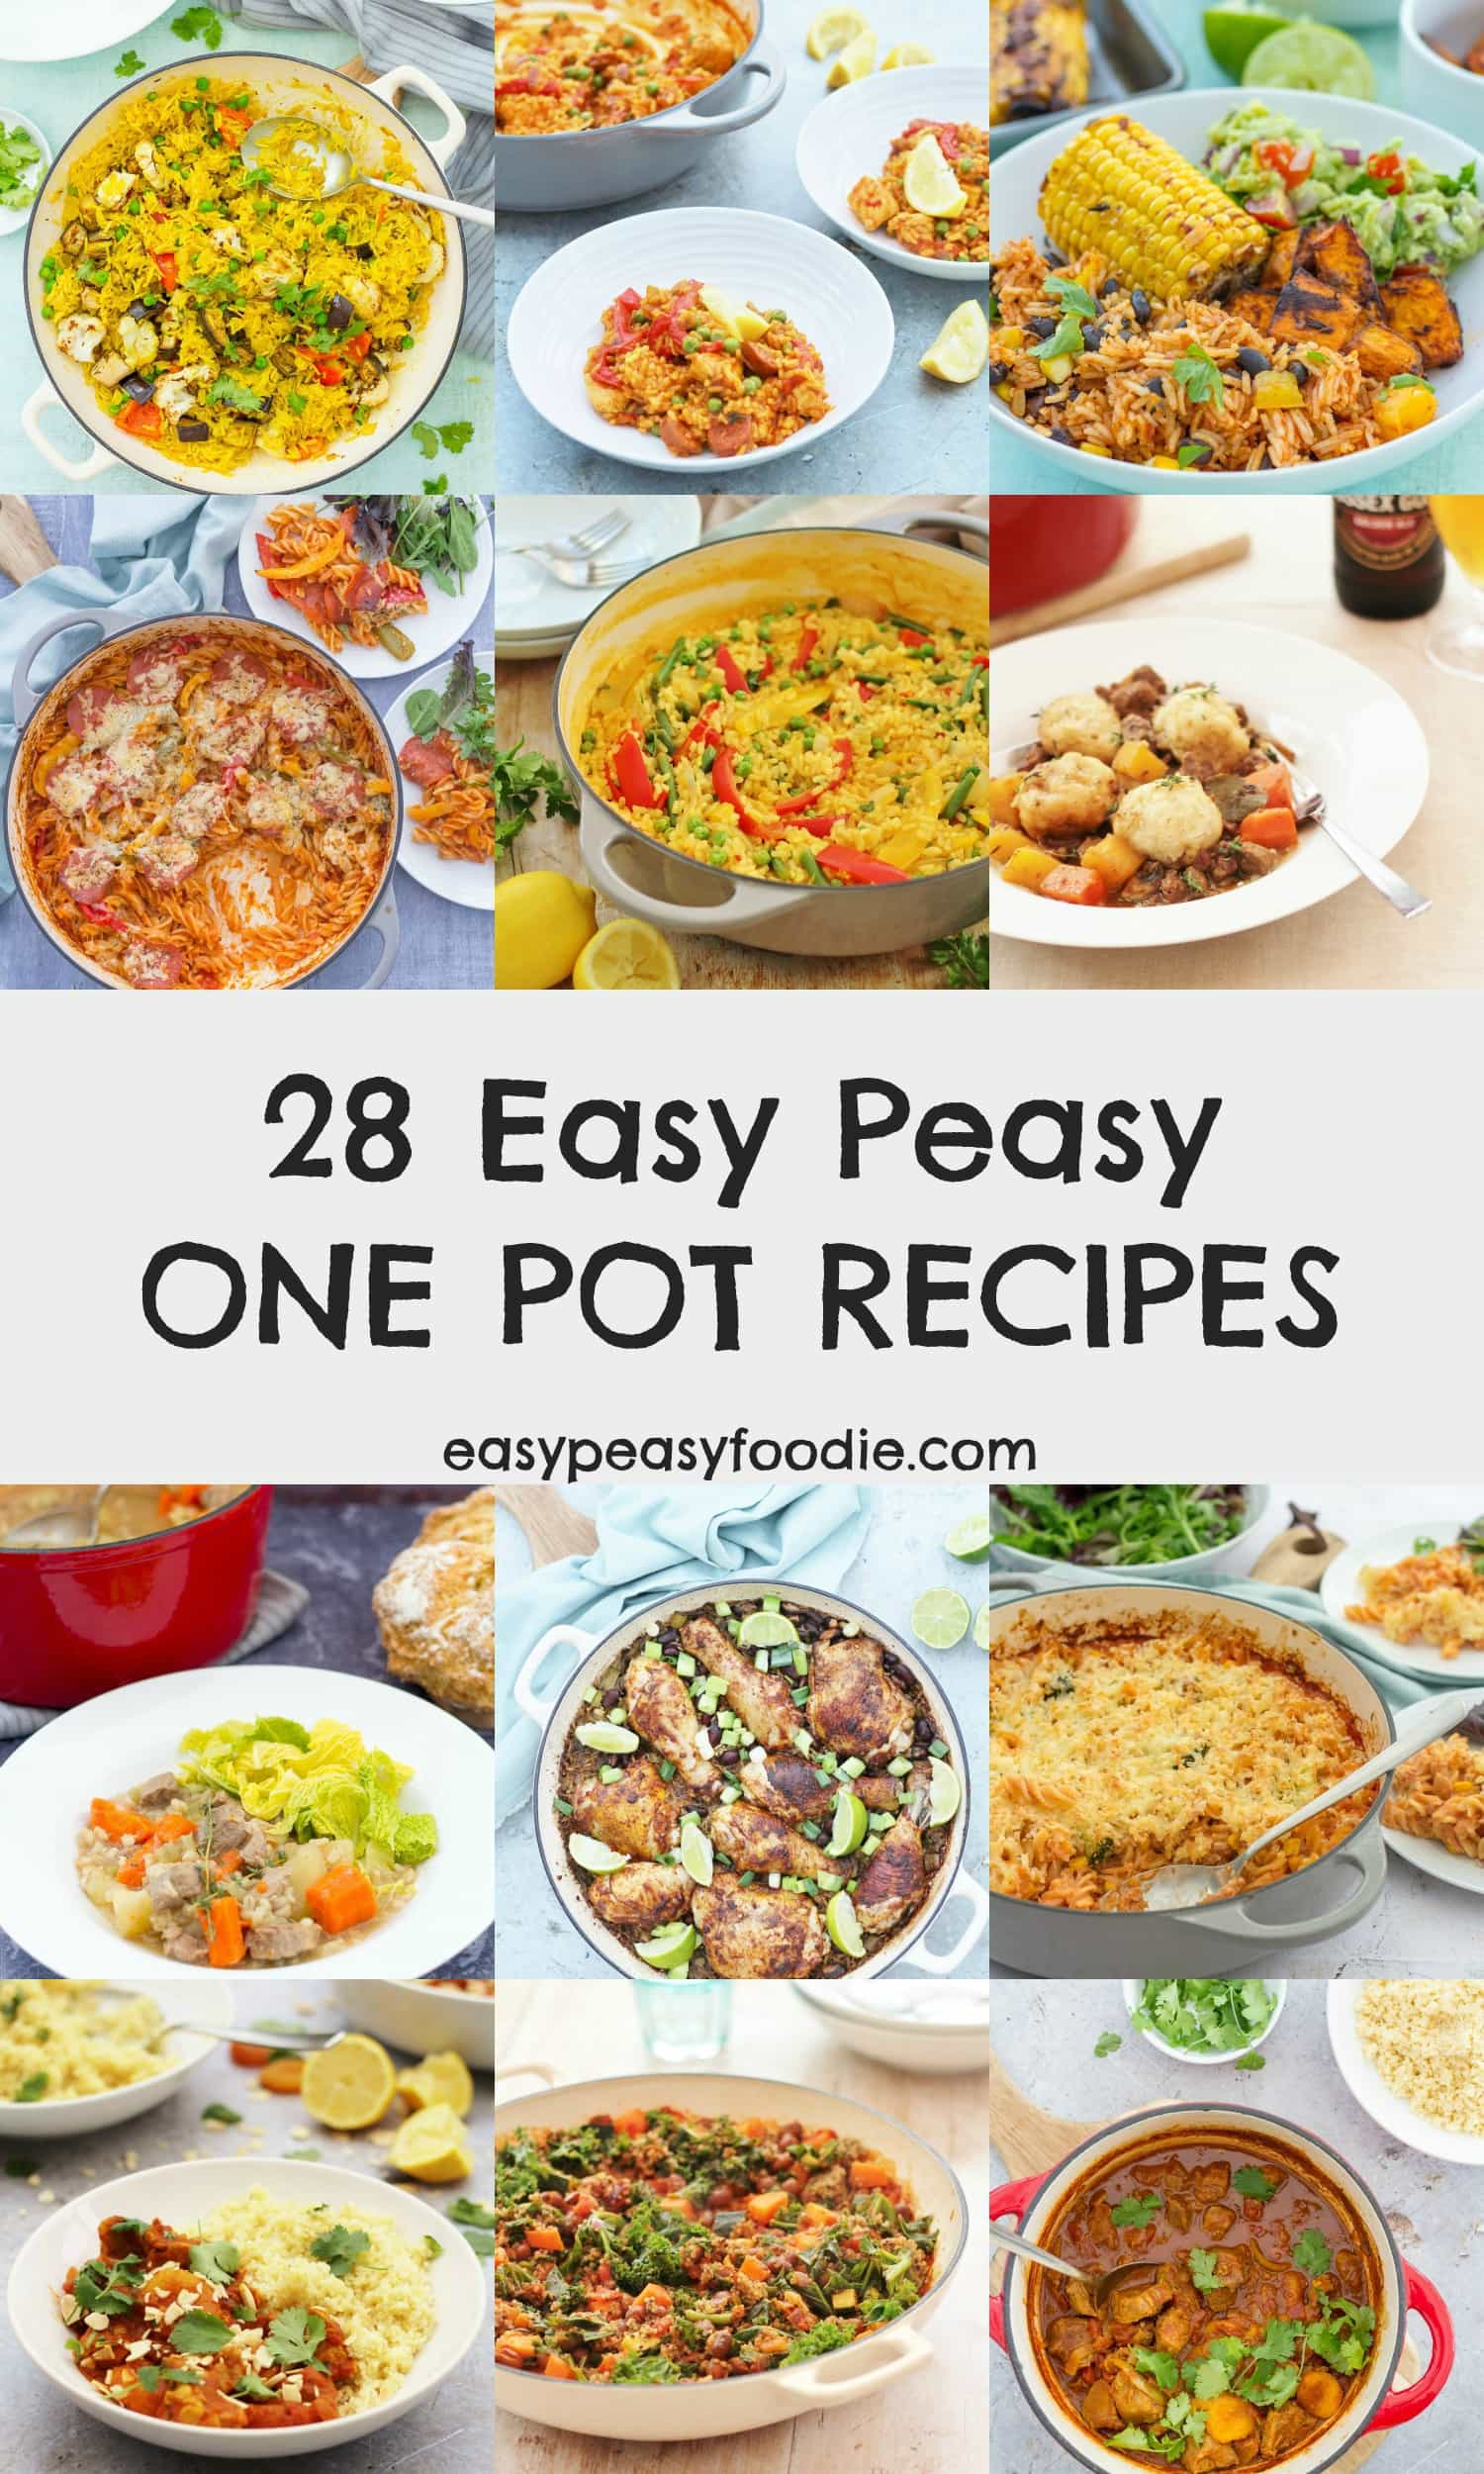 Quick and easy to make and only one pan to wash up - hooray! These 28 Easy One Pot Recipes are perfect for busy weeknight evenings... or any time when you want less mess and less stress! #onepot #onepots #onepotrecipes #onepotmeals #onepotdinners #easyonepots #easydinners #easyrecipes #familydinners #midweekmeals #easypeasyfoodie #cookblogshare